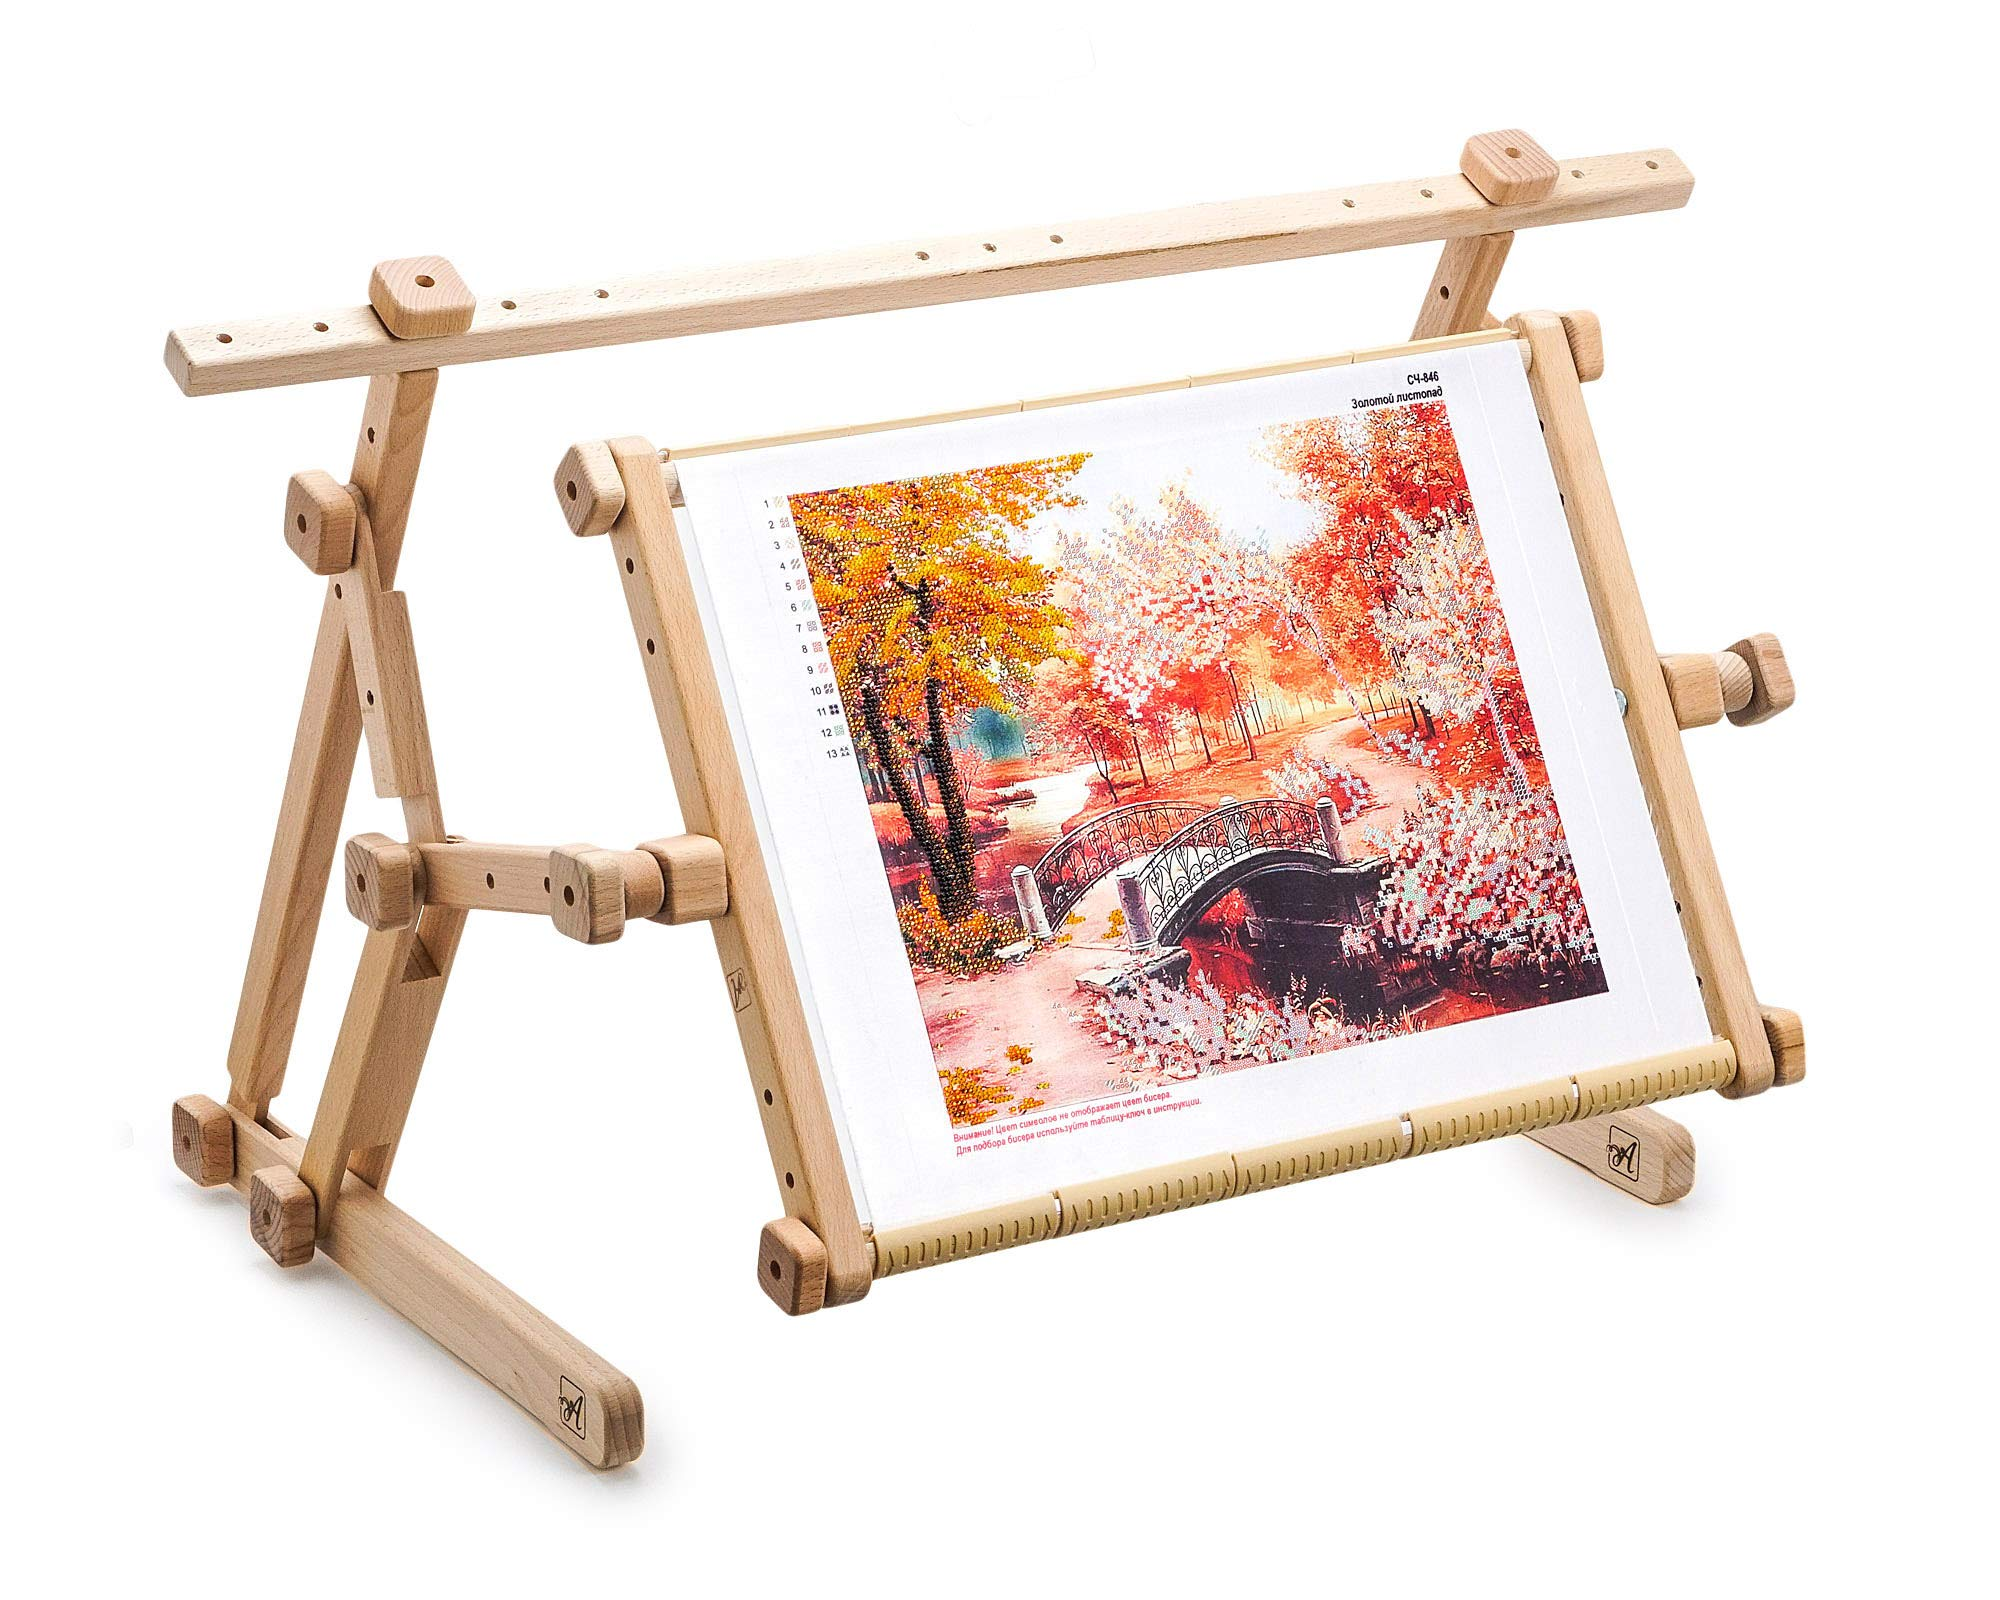 AllAboutEmbroideryUA Embroidery Adjustable Lap Table Stand Hands Free Needlepoint Wooden Cross Stitch Scroll Frame Tapestry Holder Bed Table Stand Craft Tool (15.8'' x 22'') by AllAboutEmbroideryUA